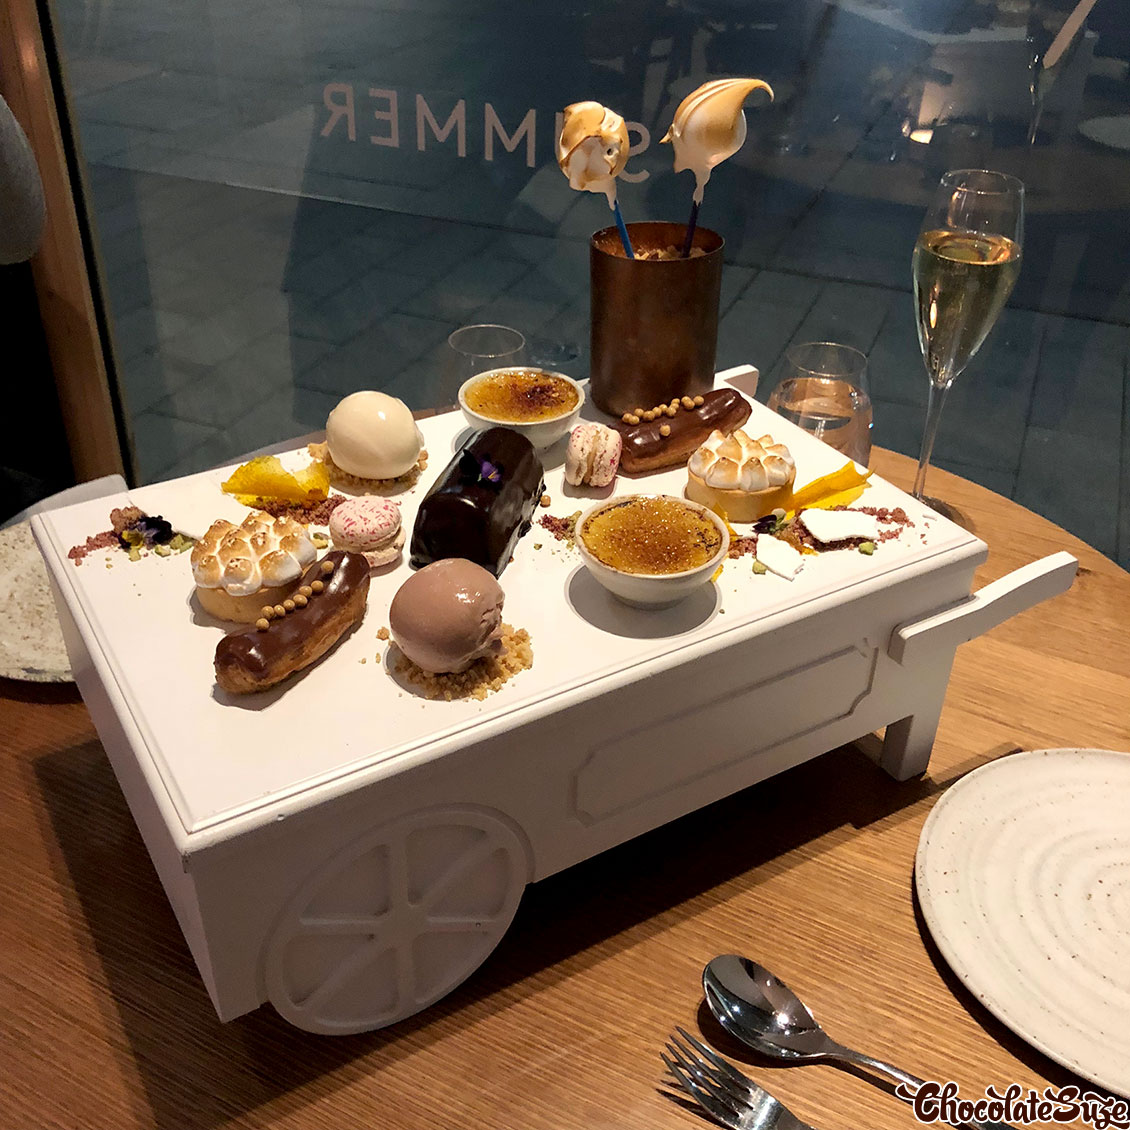 Dessert trolley at Ete, Barangaroo